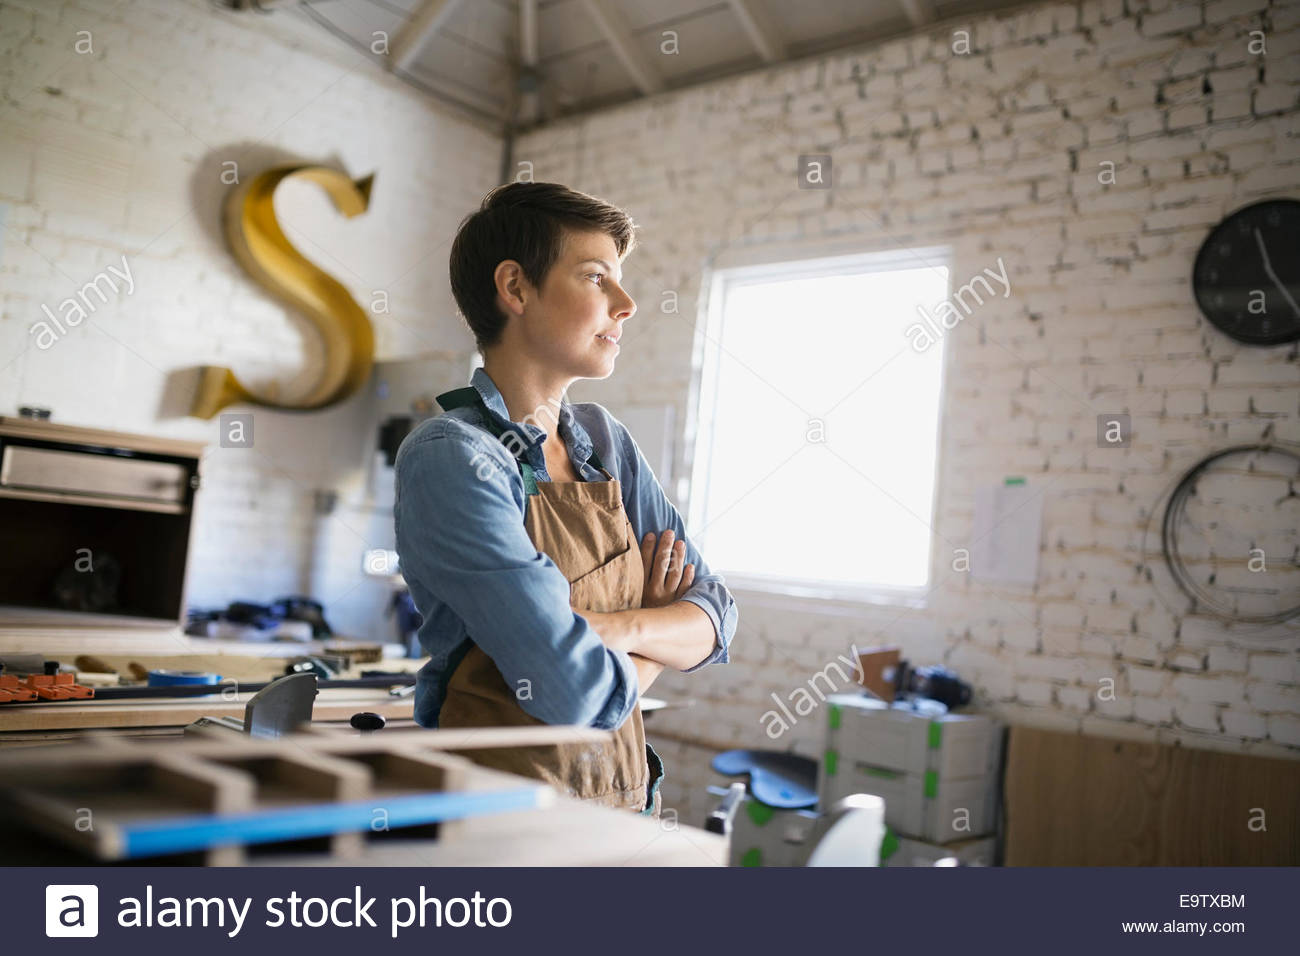 Pensive female carpenter with arms crossed in workshop - Stock Image